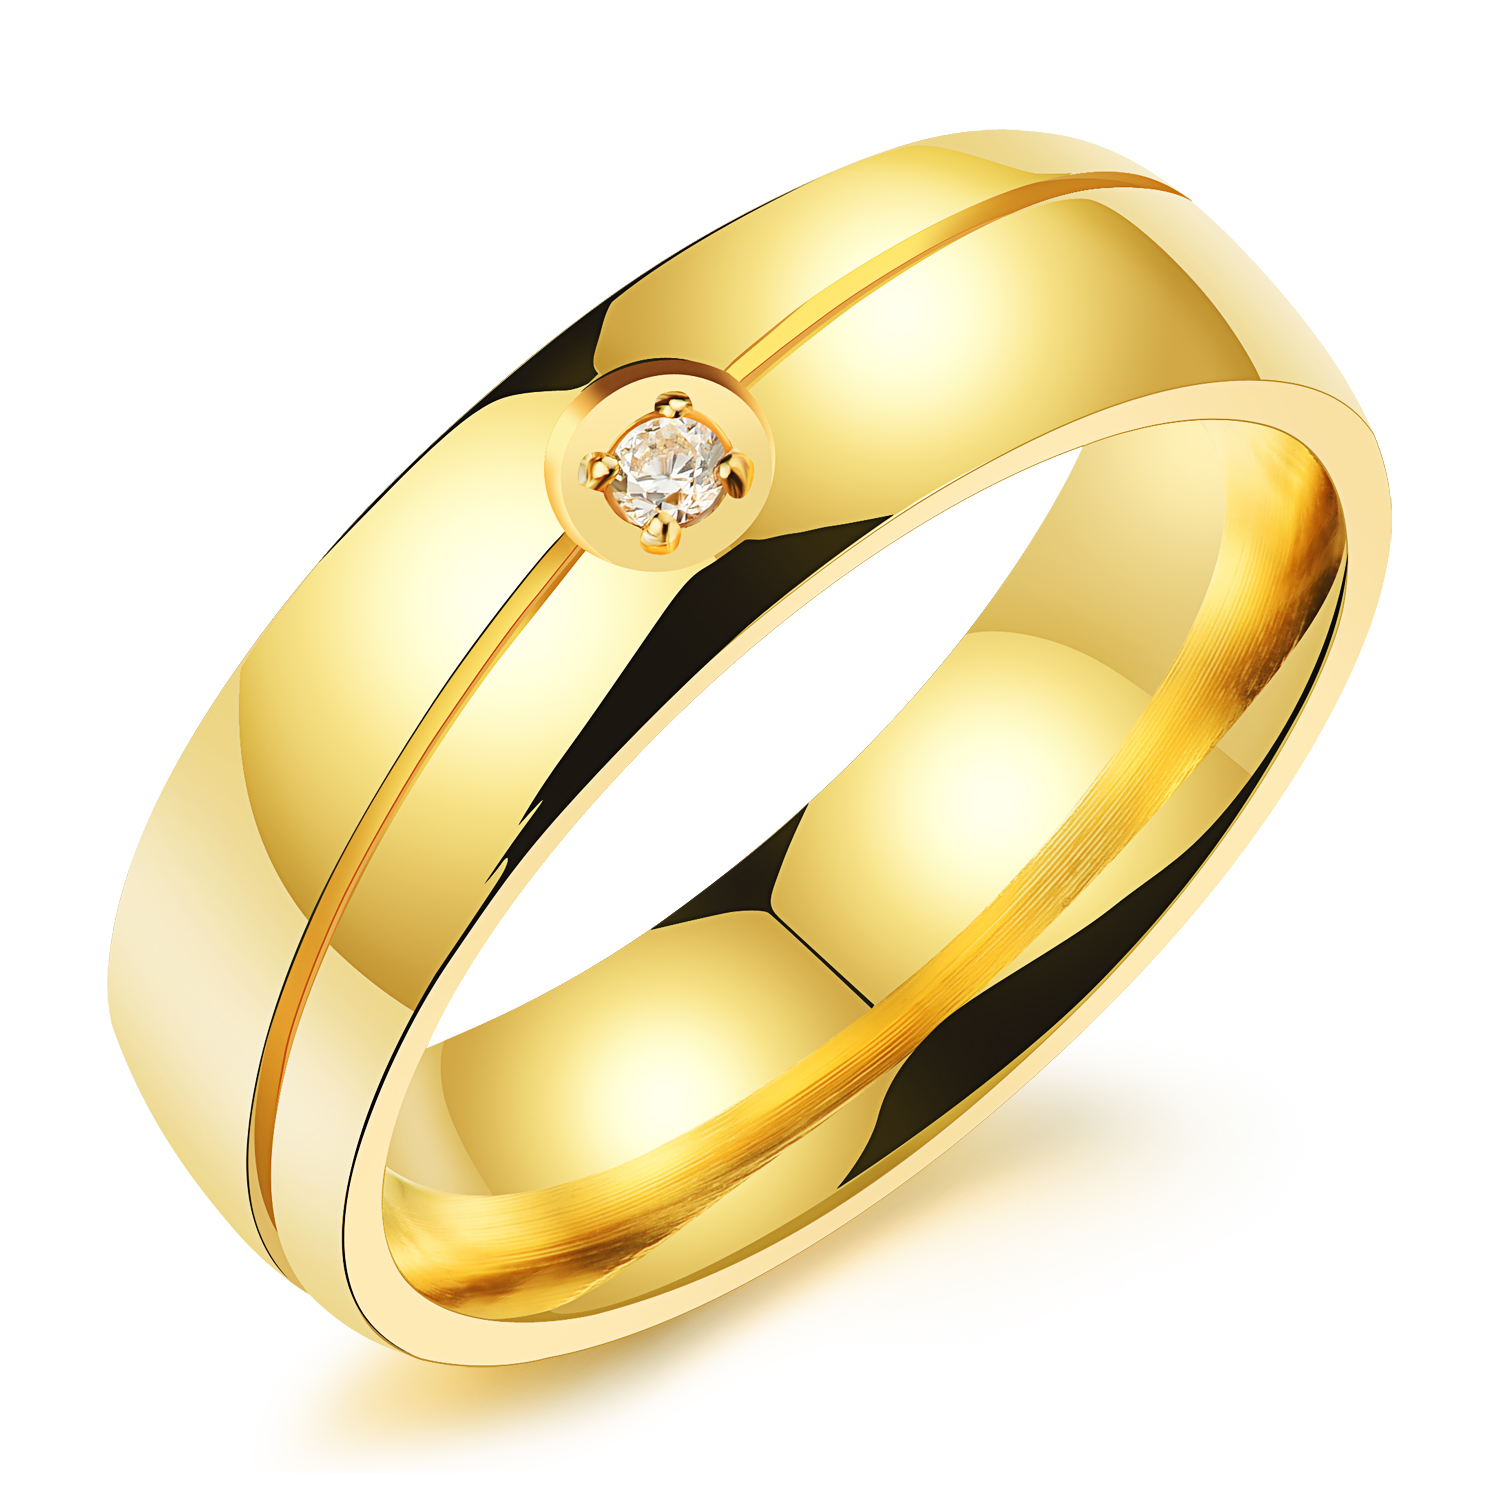 designs a wedding eric huffpost b jewellery o facebook ring making what does represent w promises band